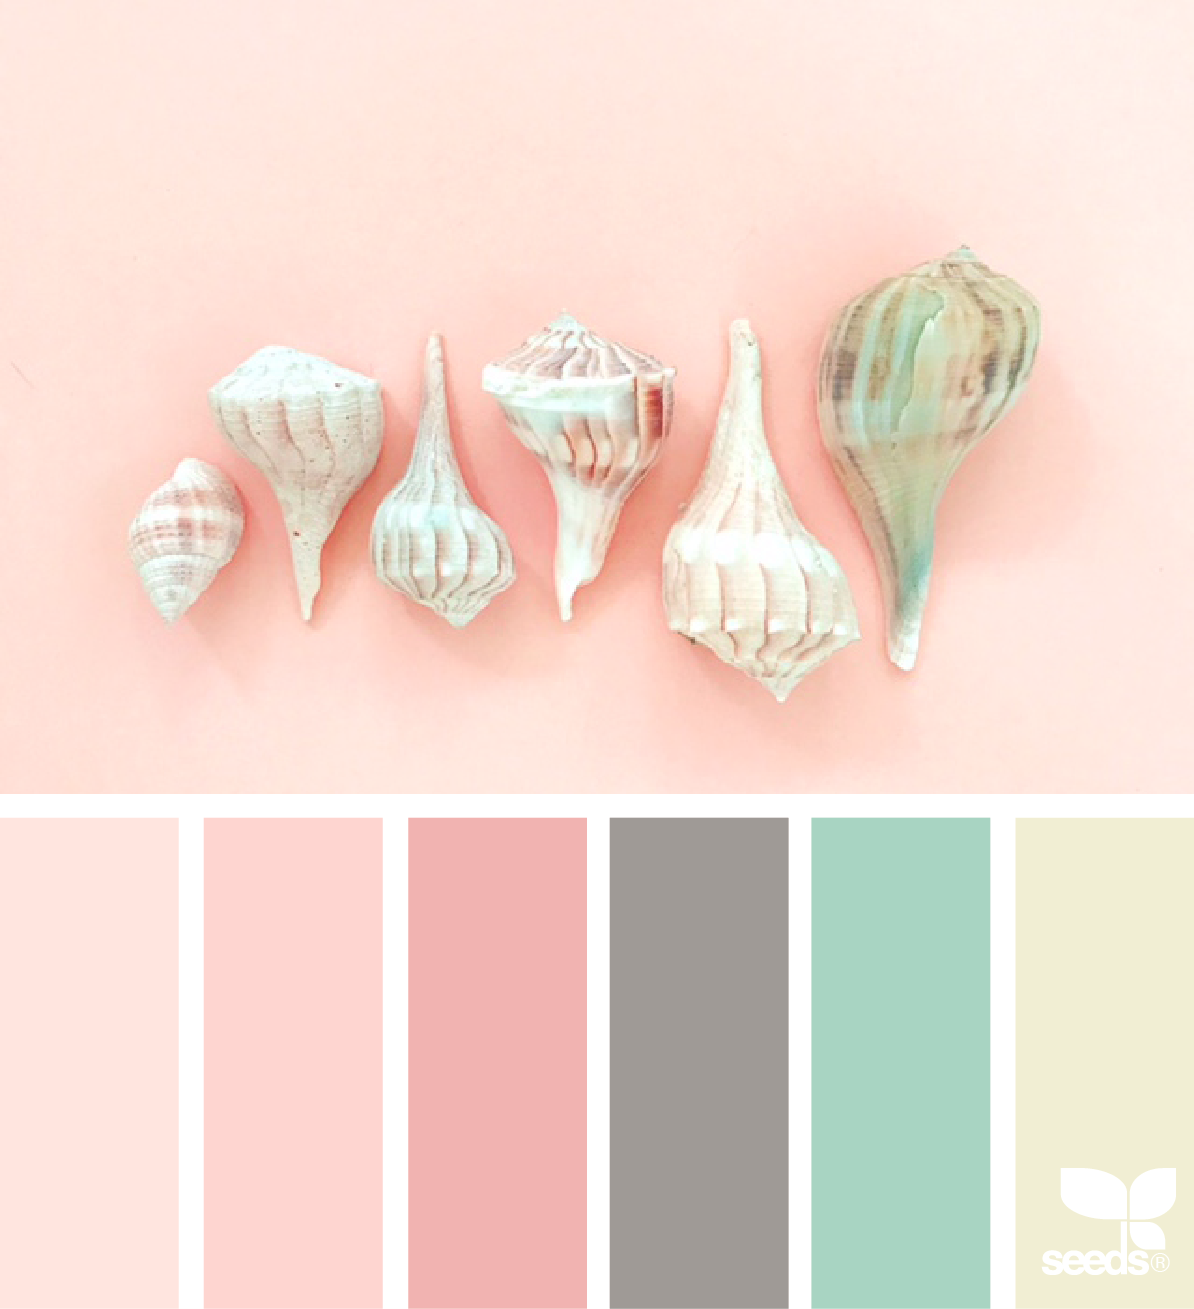 6_8_mColorCollect_craftpalneter_hanni | Colour | Pinterest | Office ...